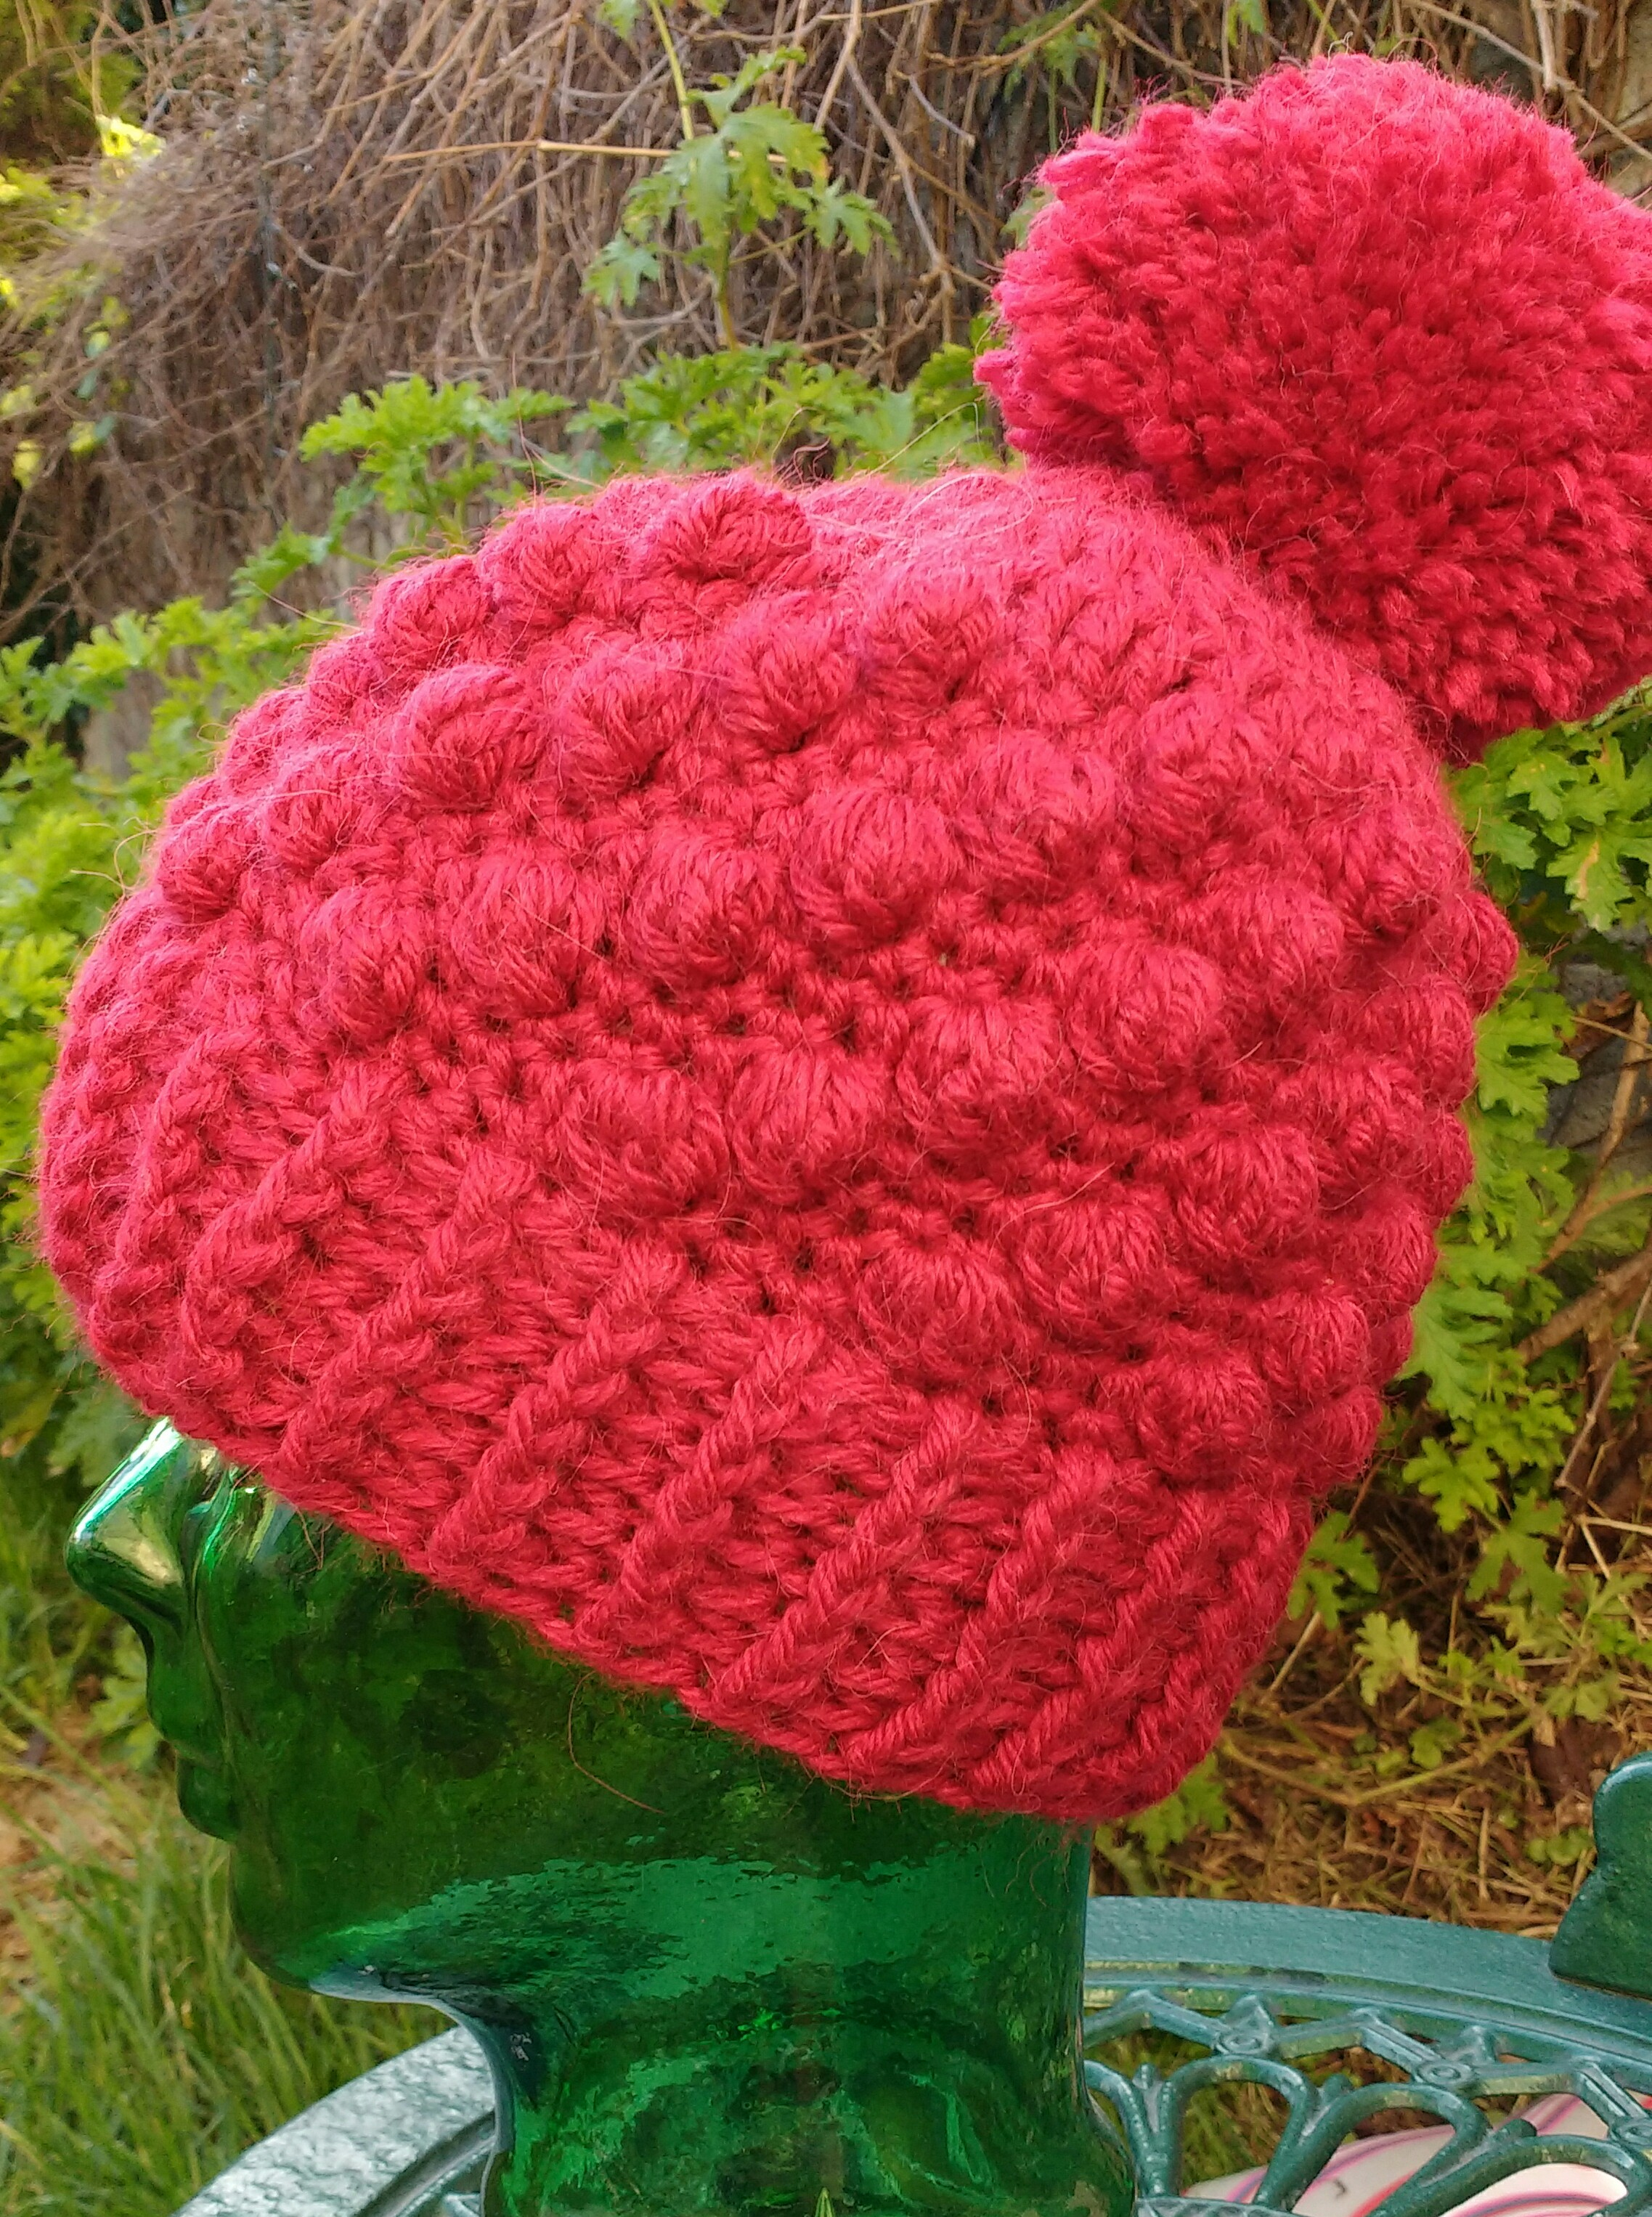 Bobble and Pom Pom Crochet Hat